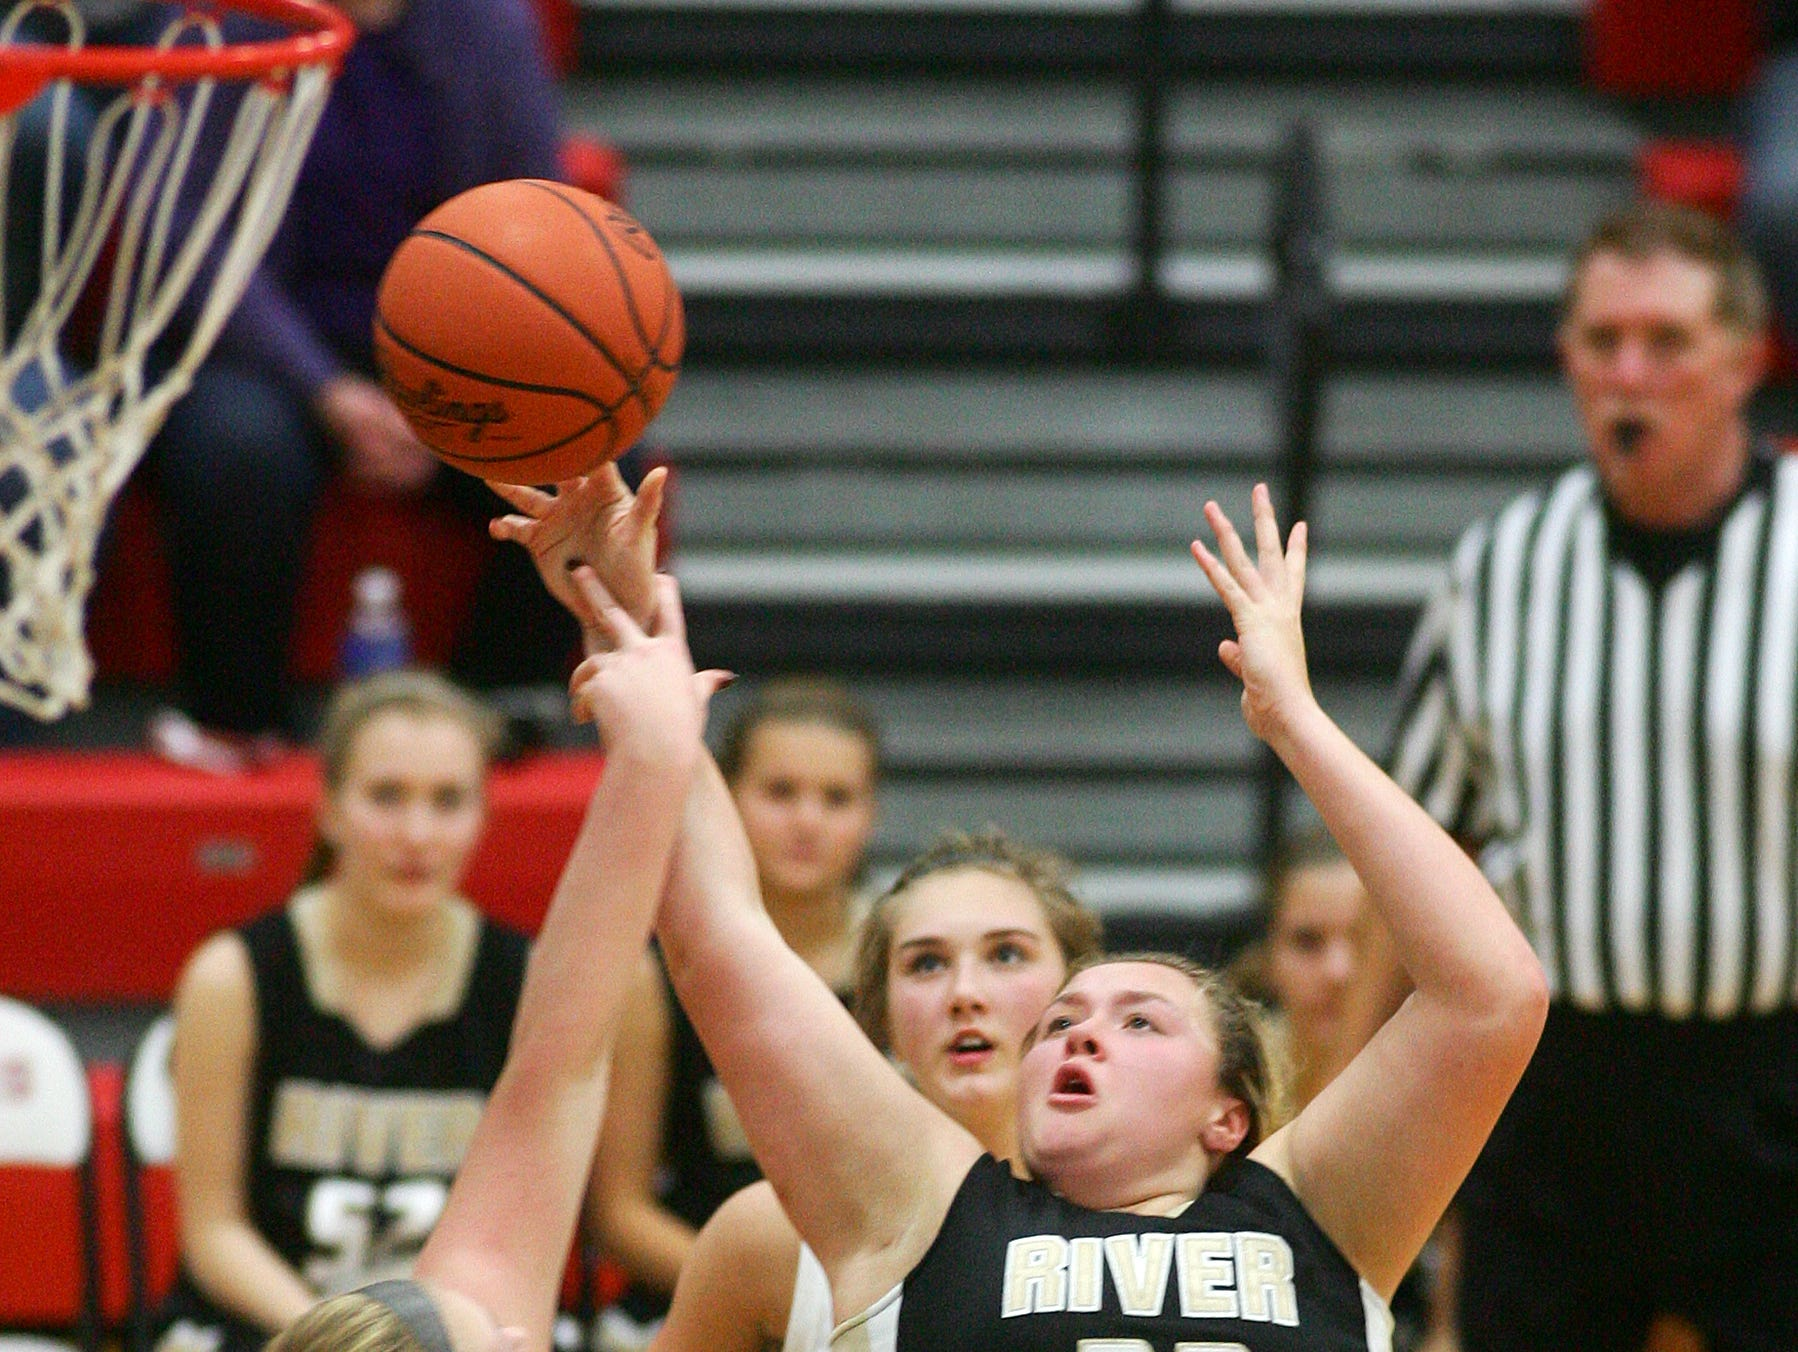 River View sophomore Mackenzie Huff eyes the basket Wednesday during the team's 41-28 victory over Coshocton.